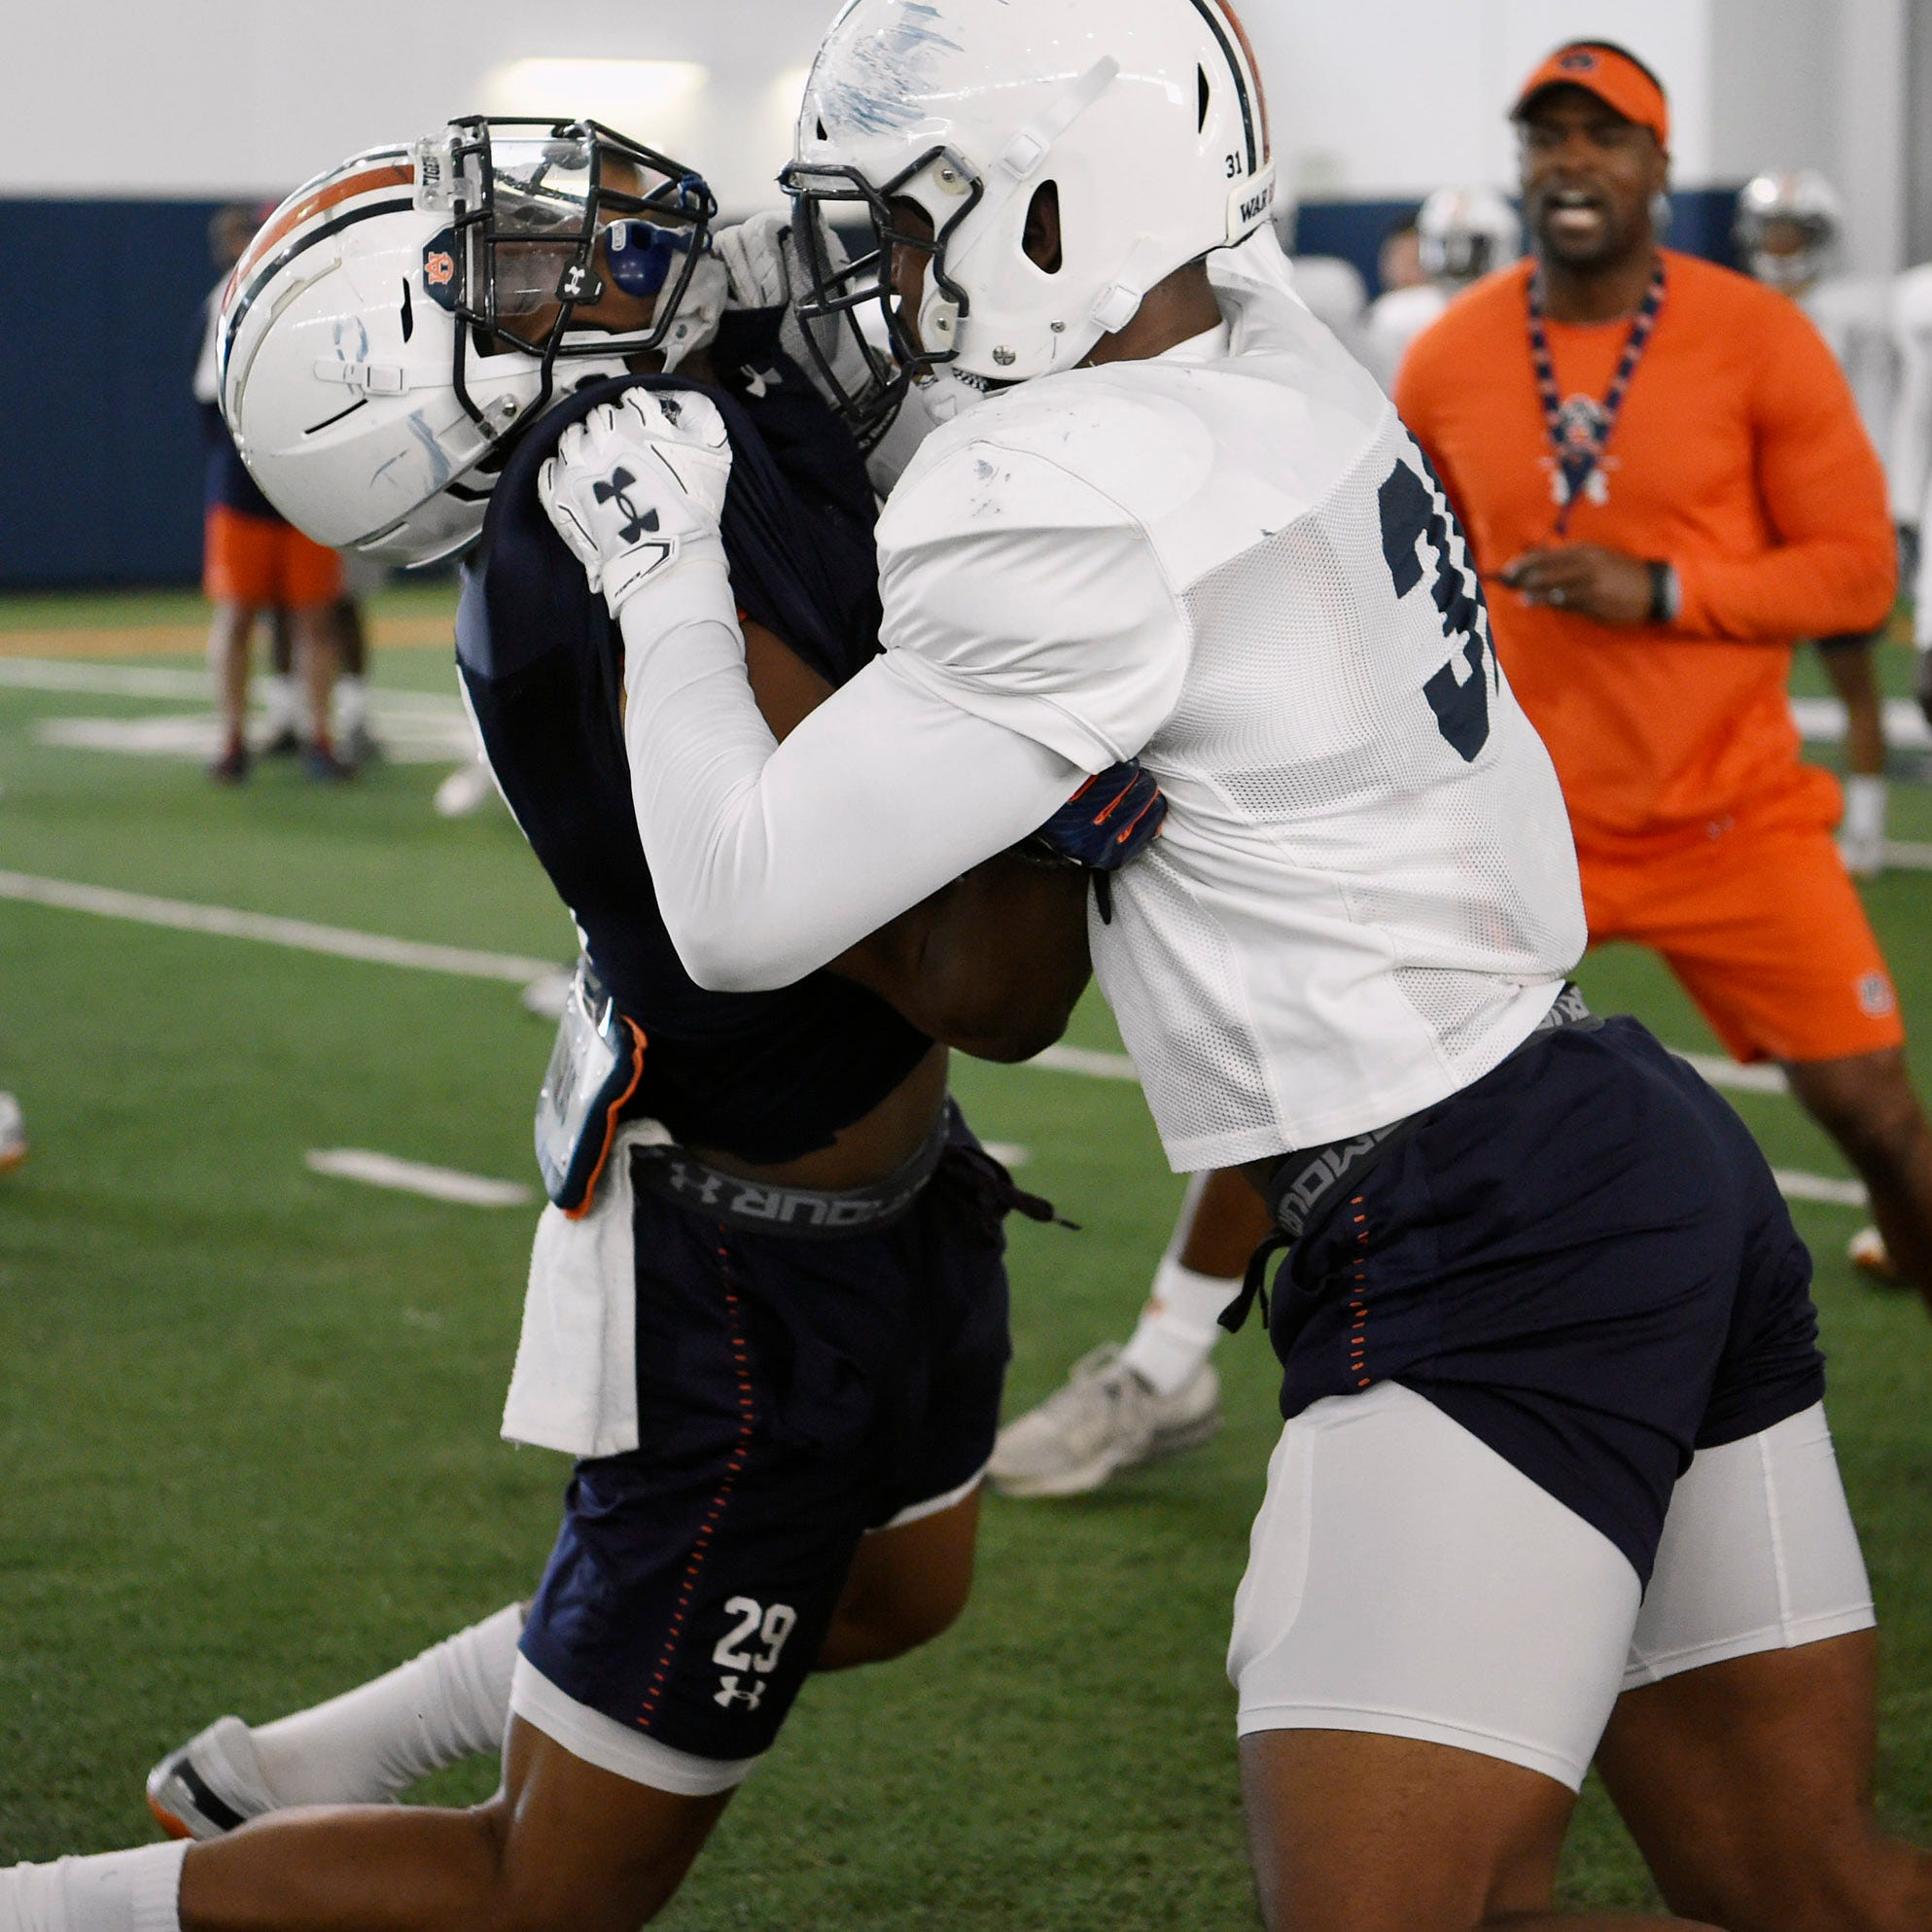 Chandler Wooten had 'probably the best spring' of any Auburn linebacker